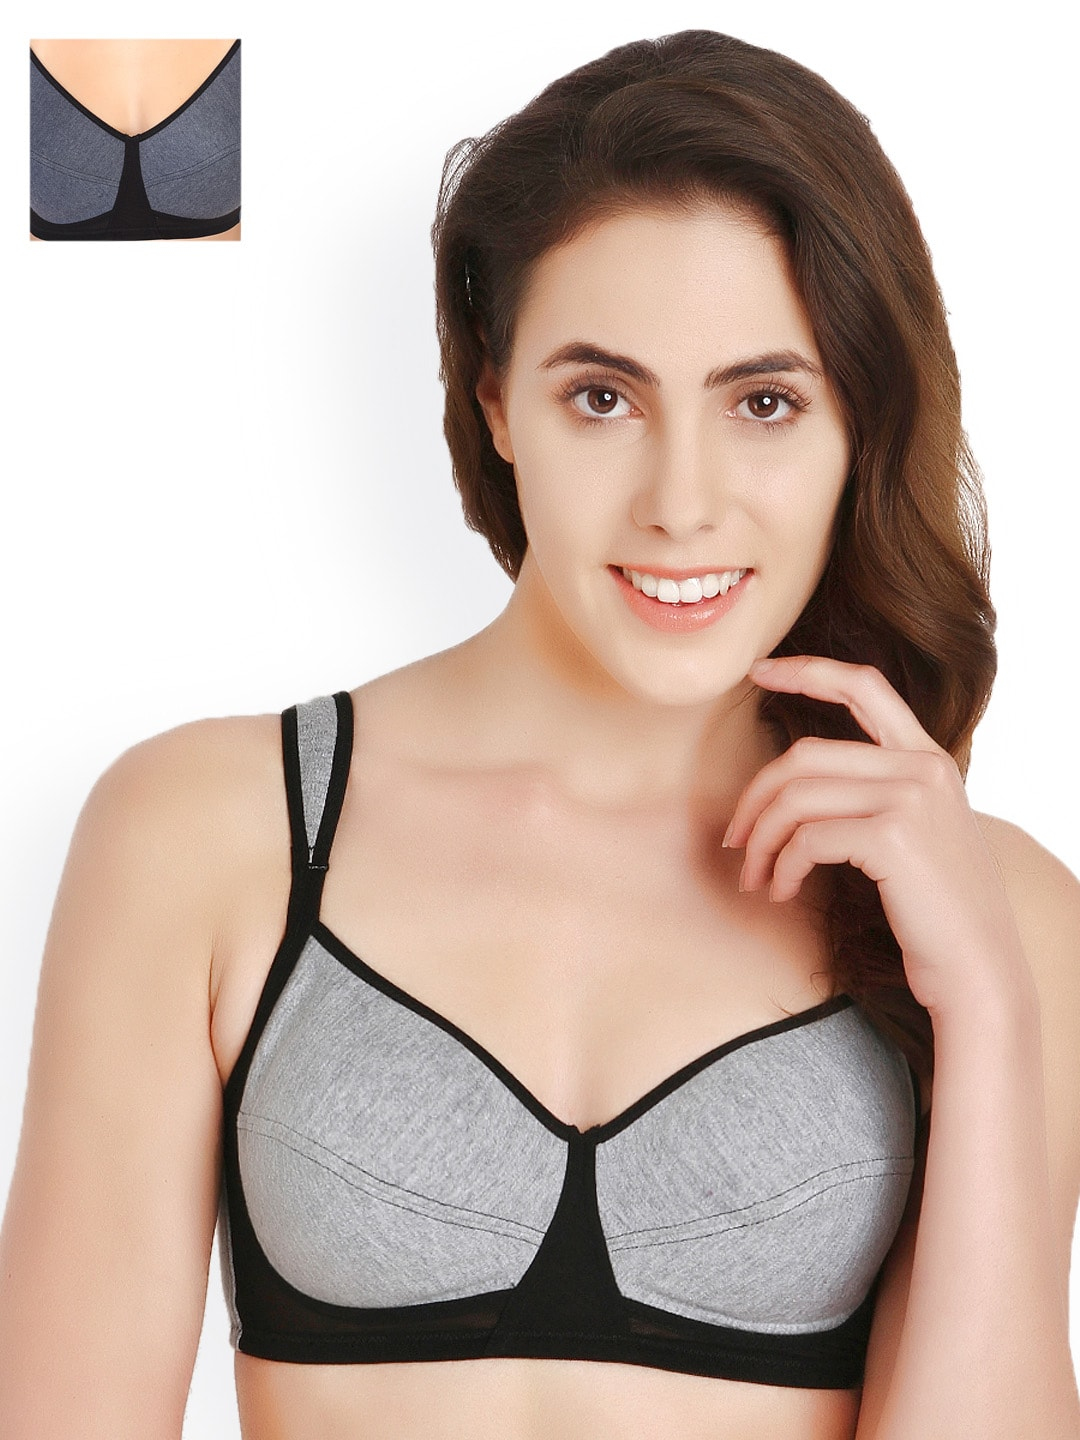 Soie Pack of 2 Full-Coverage T-shirt Bras 901